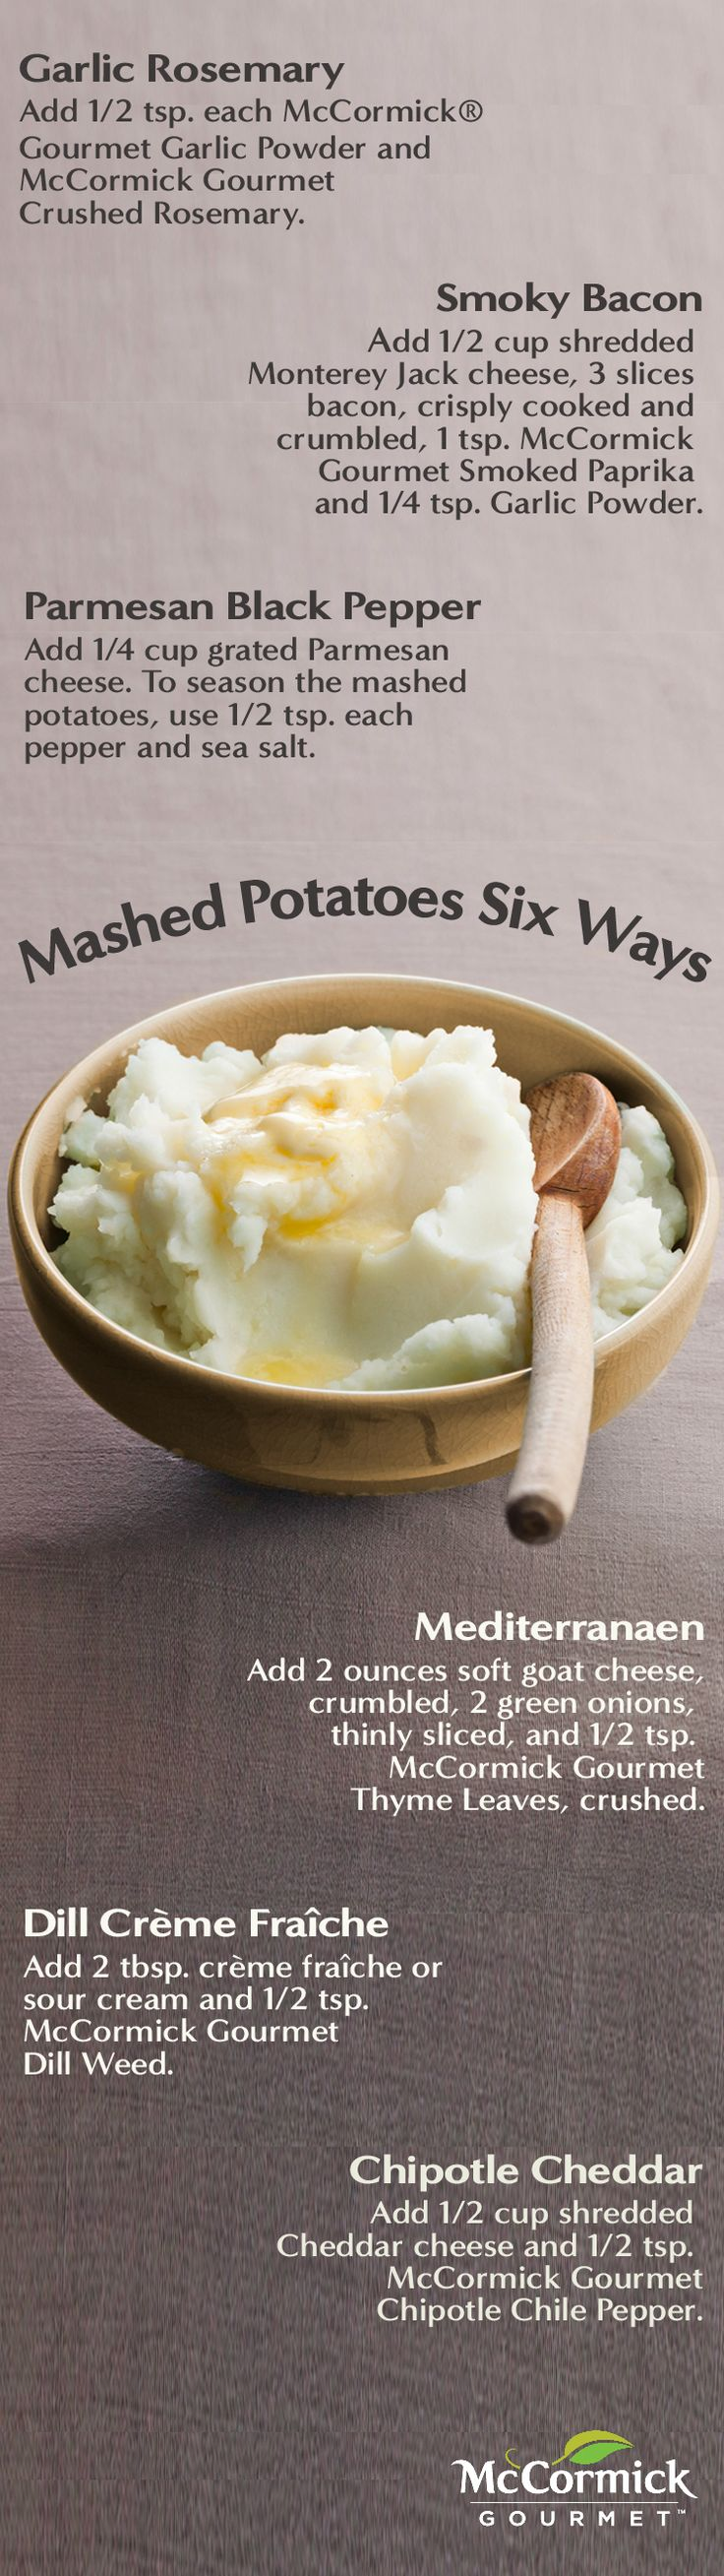 This Thanksgiving, mix up a classic side dish with these mashed potato recipes including Mediterranean, smoky bacon, chipotle cheddar and more.